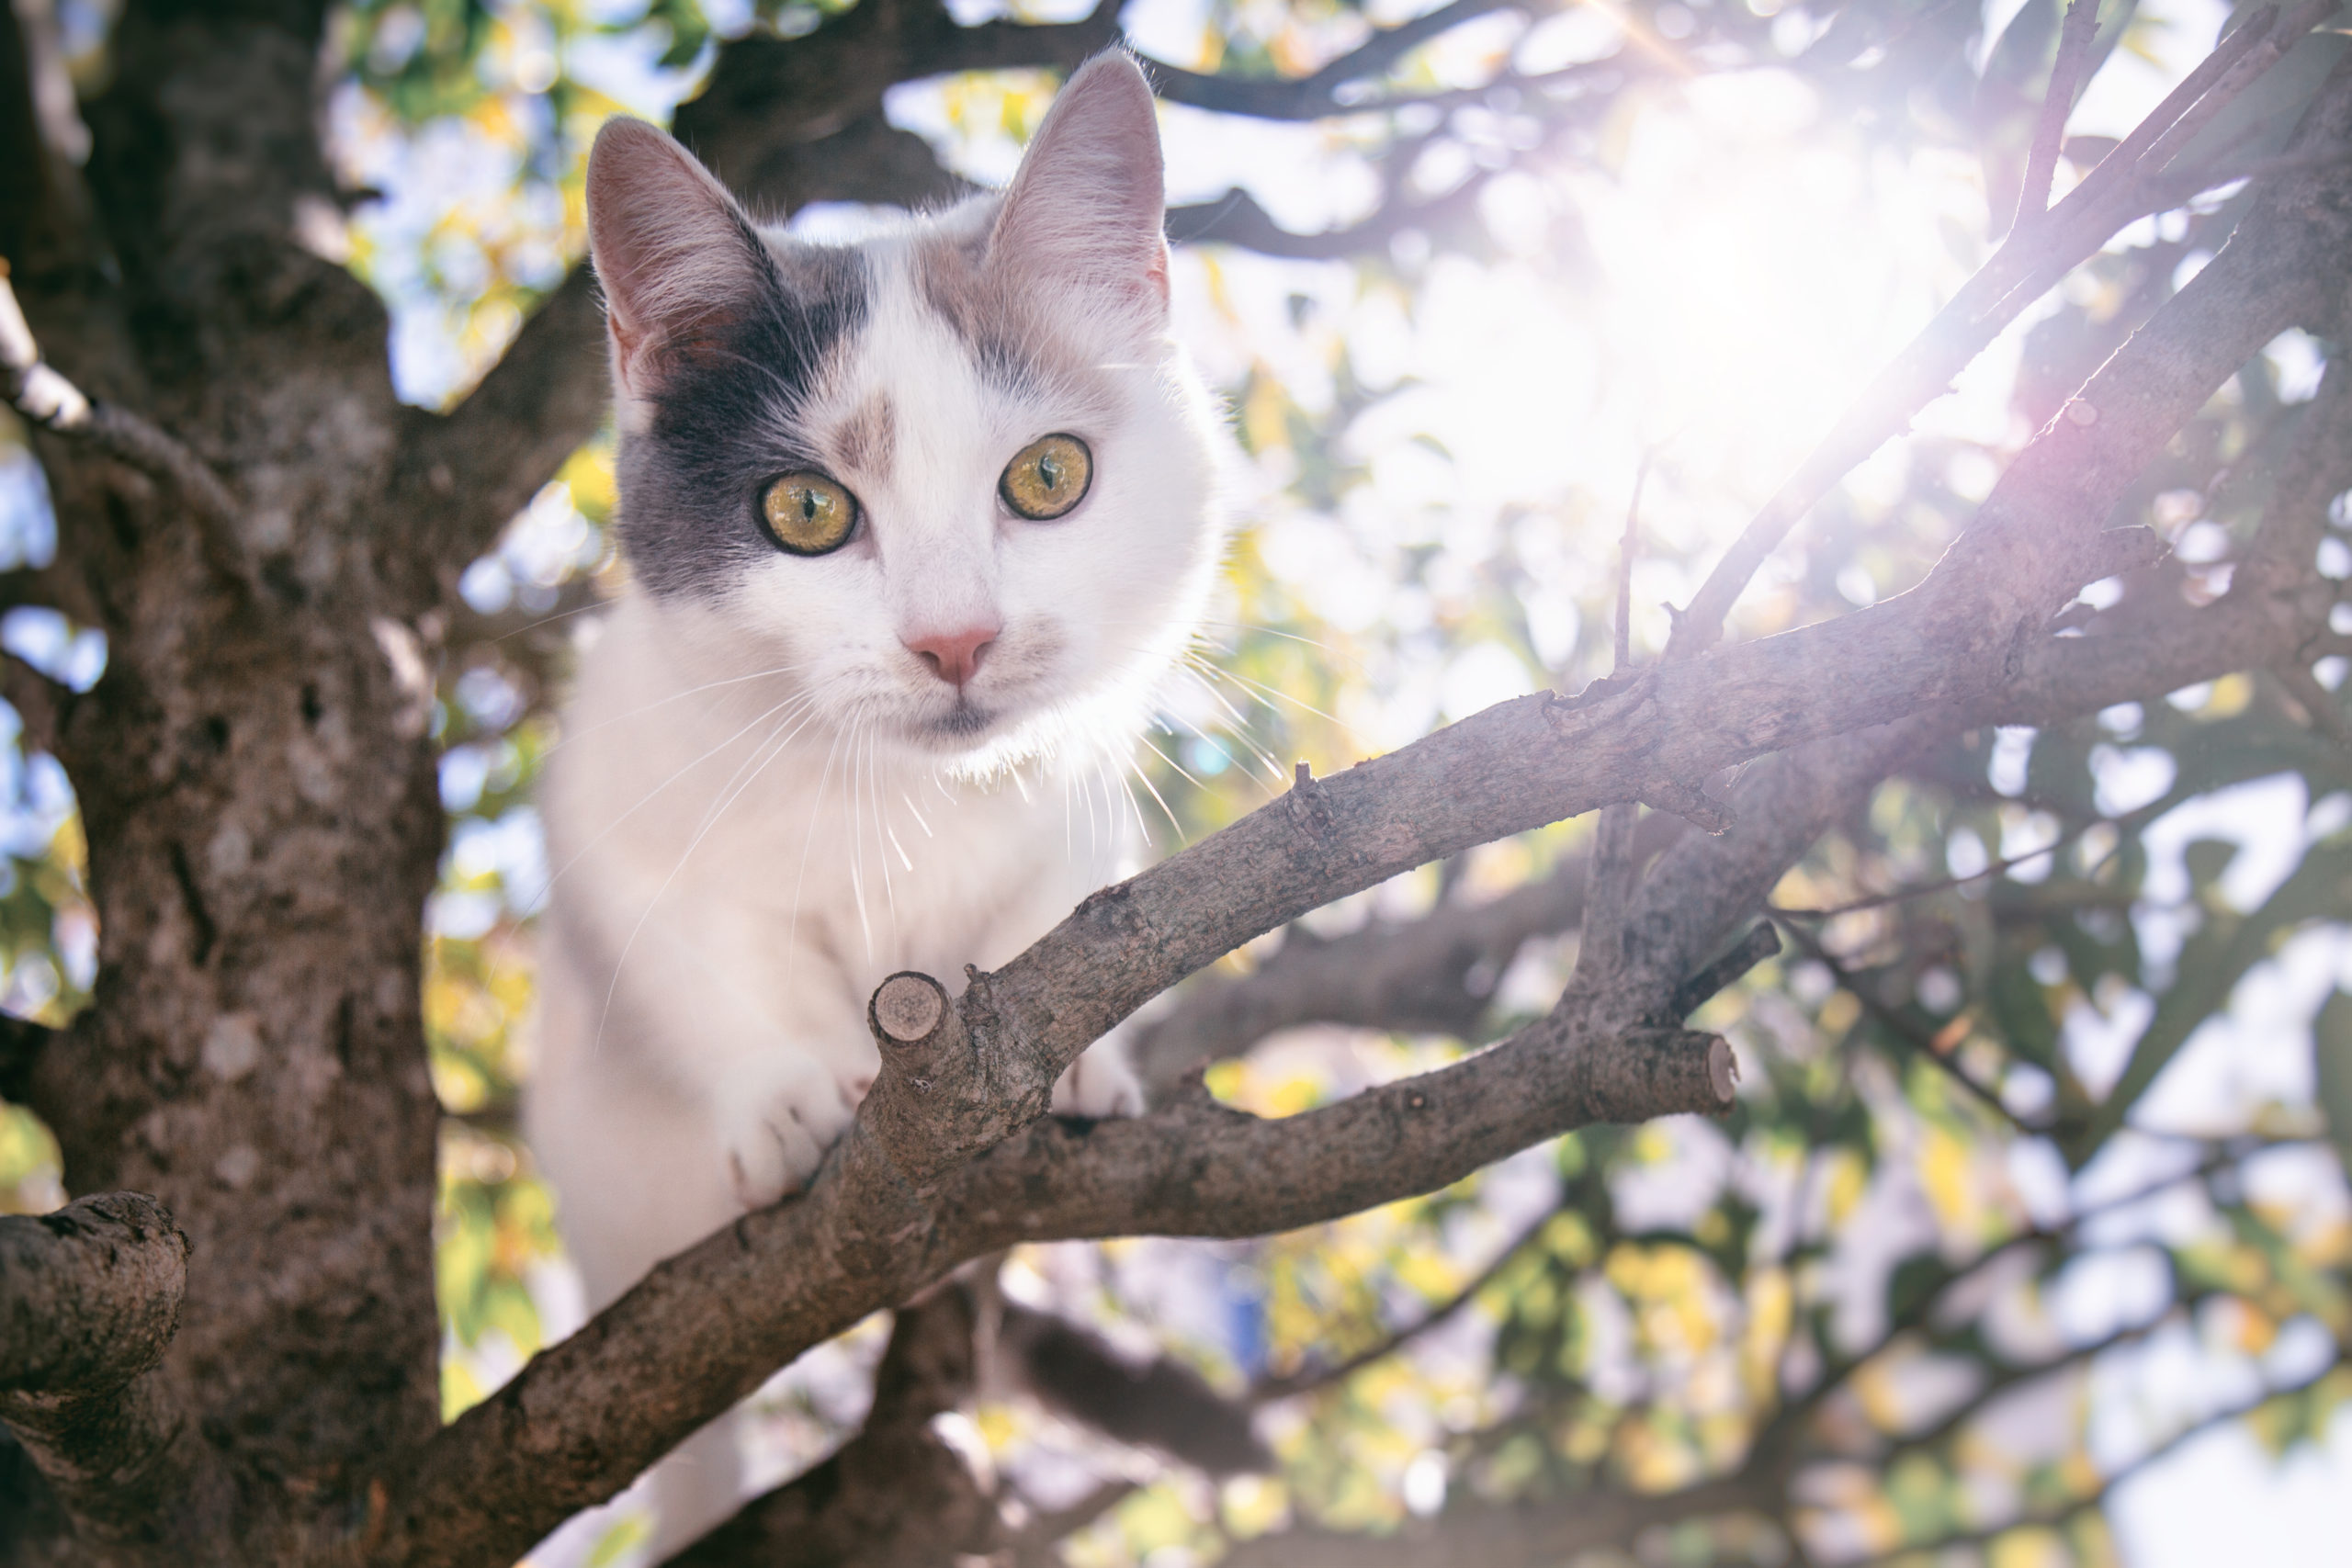 Photographe animal de compagnie, chat,Eternel Présent, PetShoot photographie